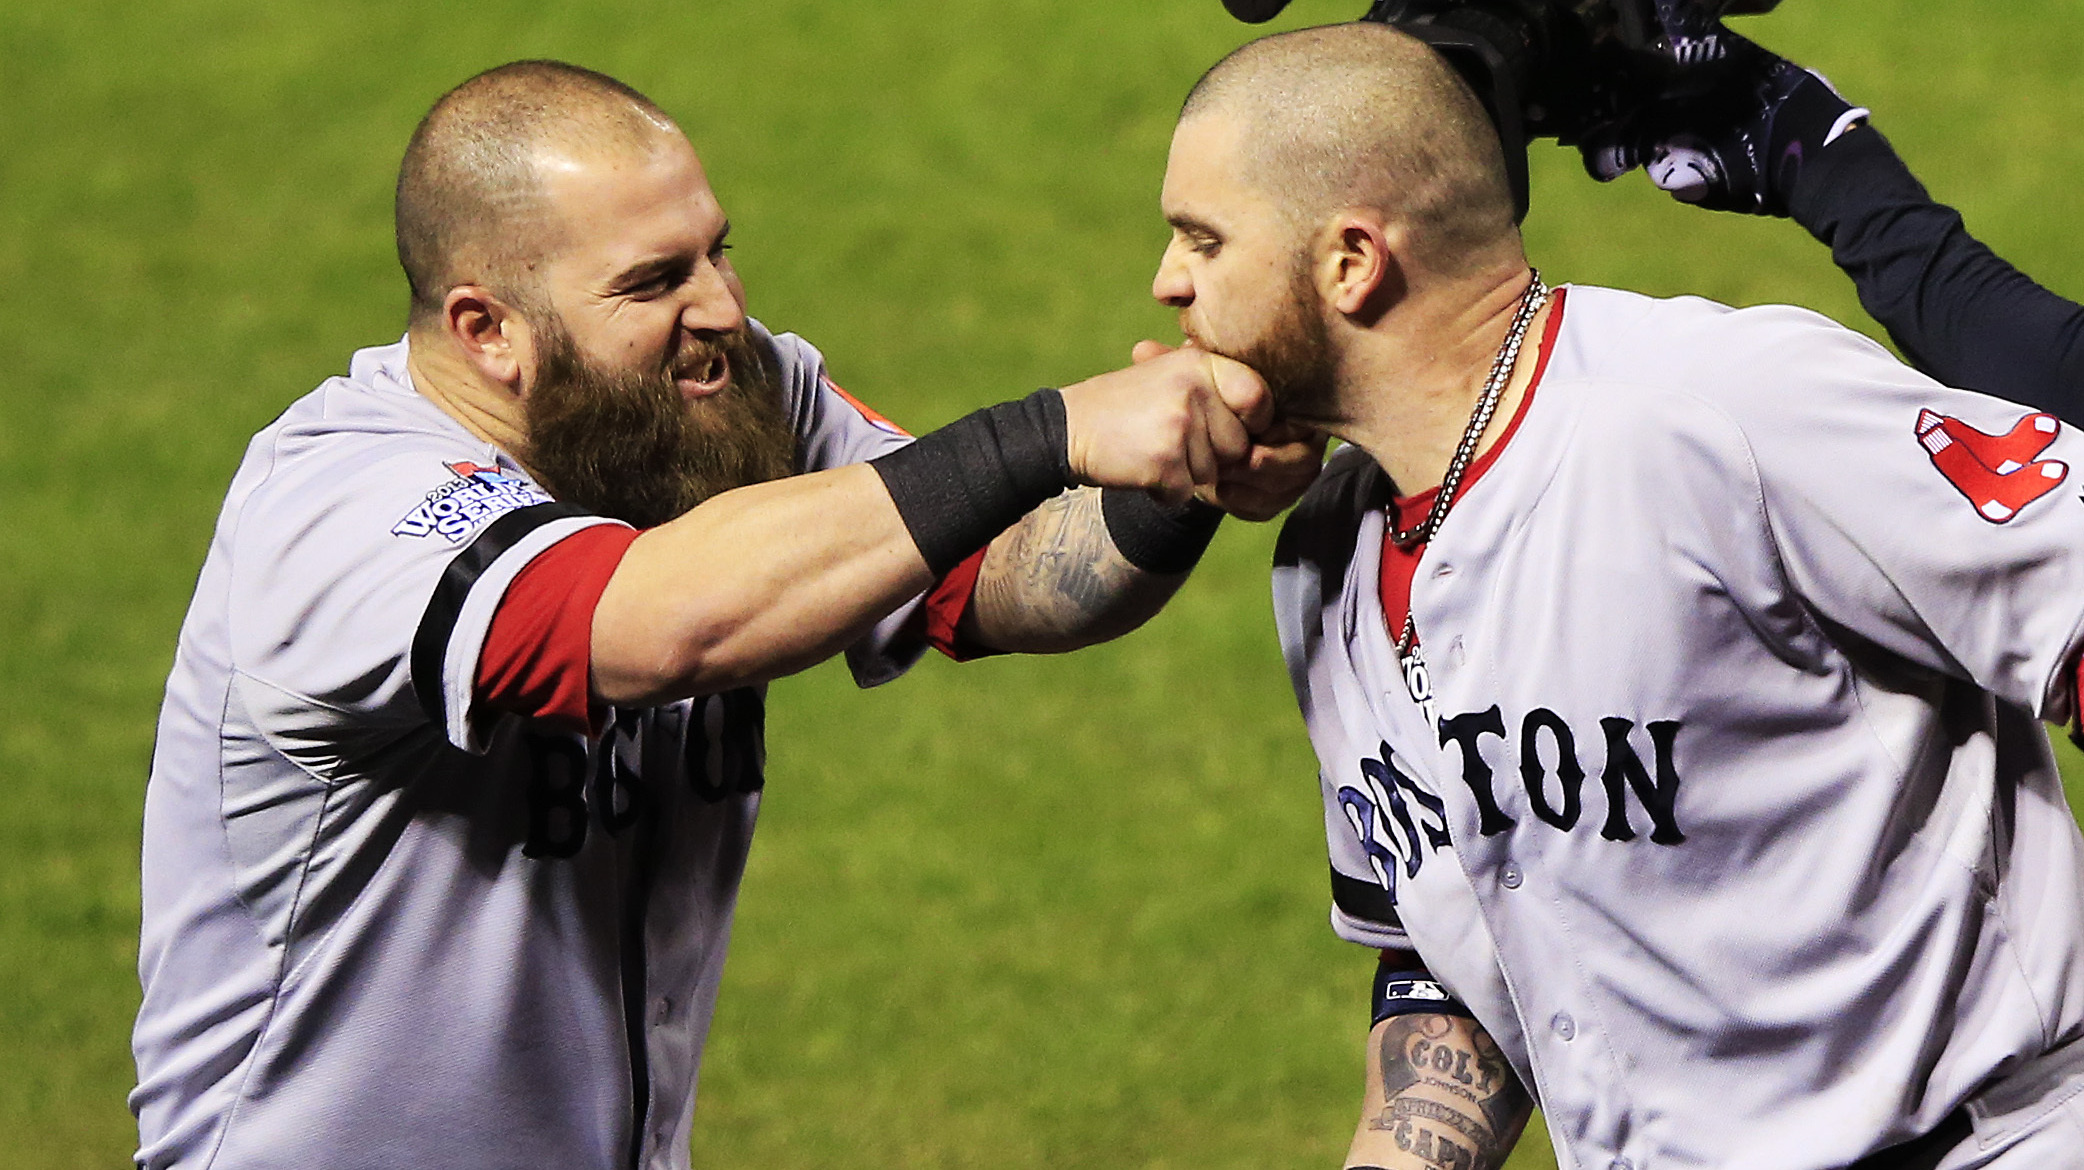 Sorry, Red Sox, Heavy Stubble Beats Beards For Attractiveness